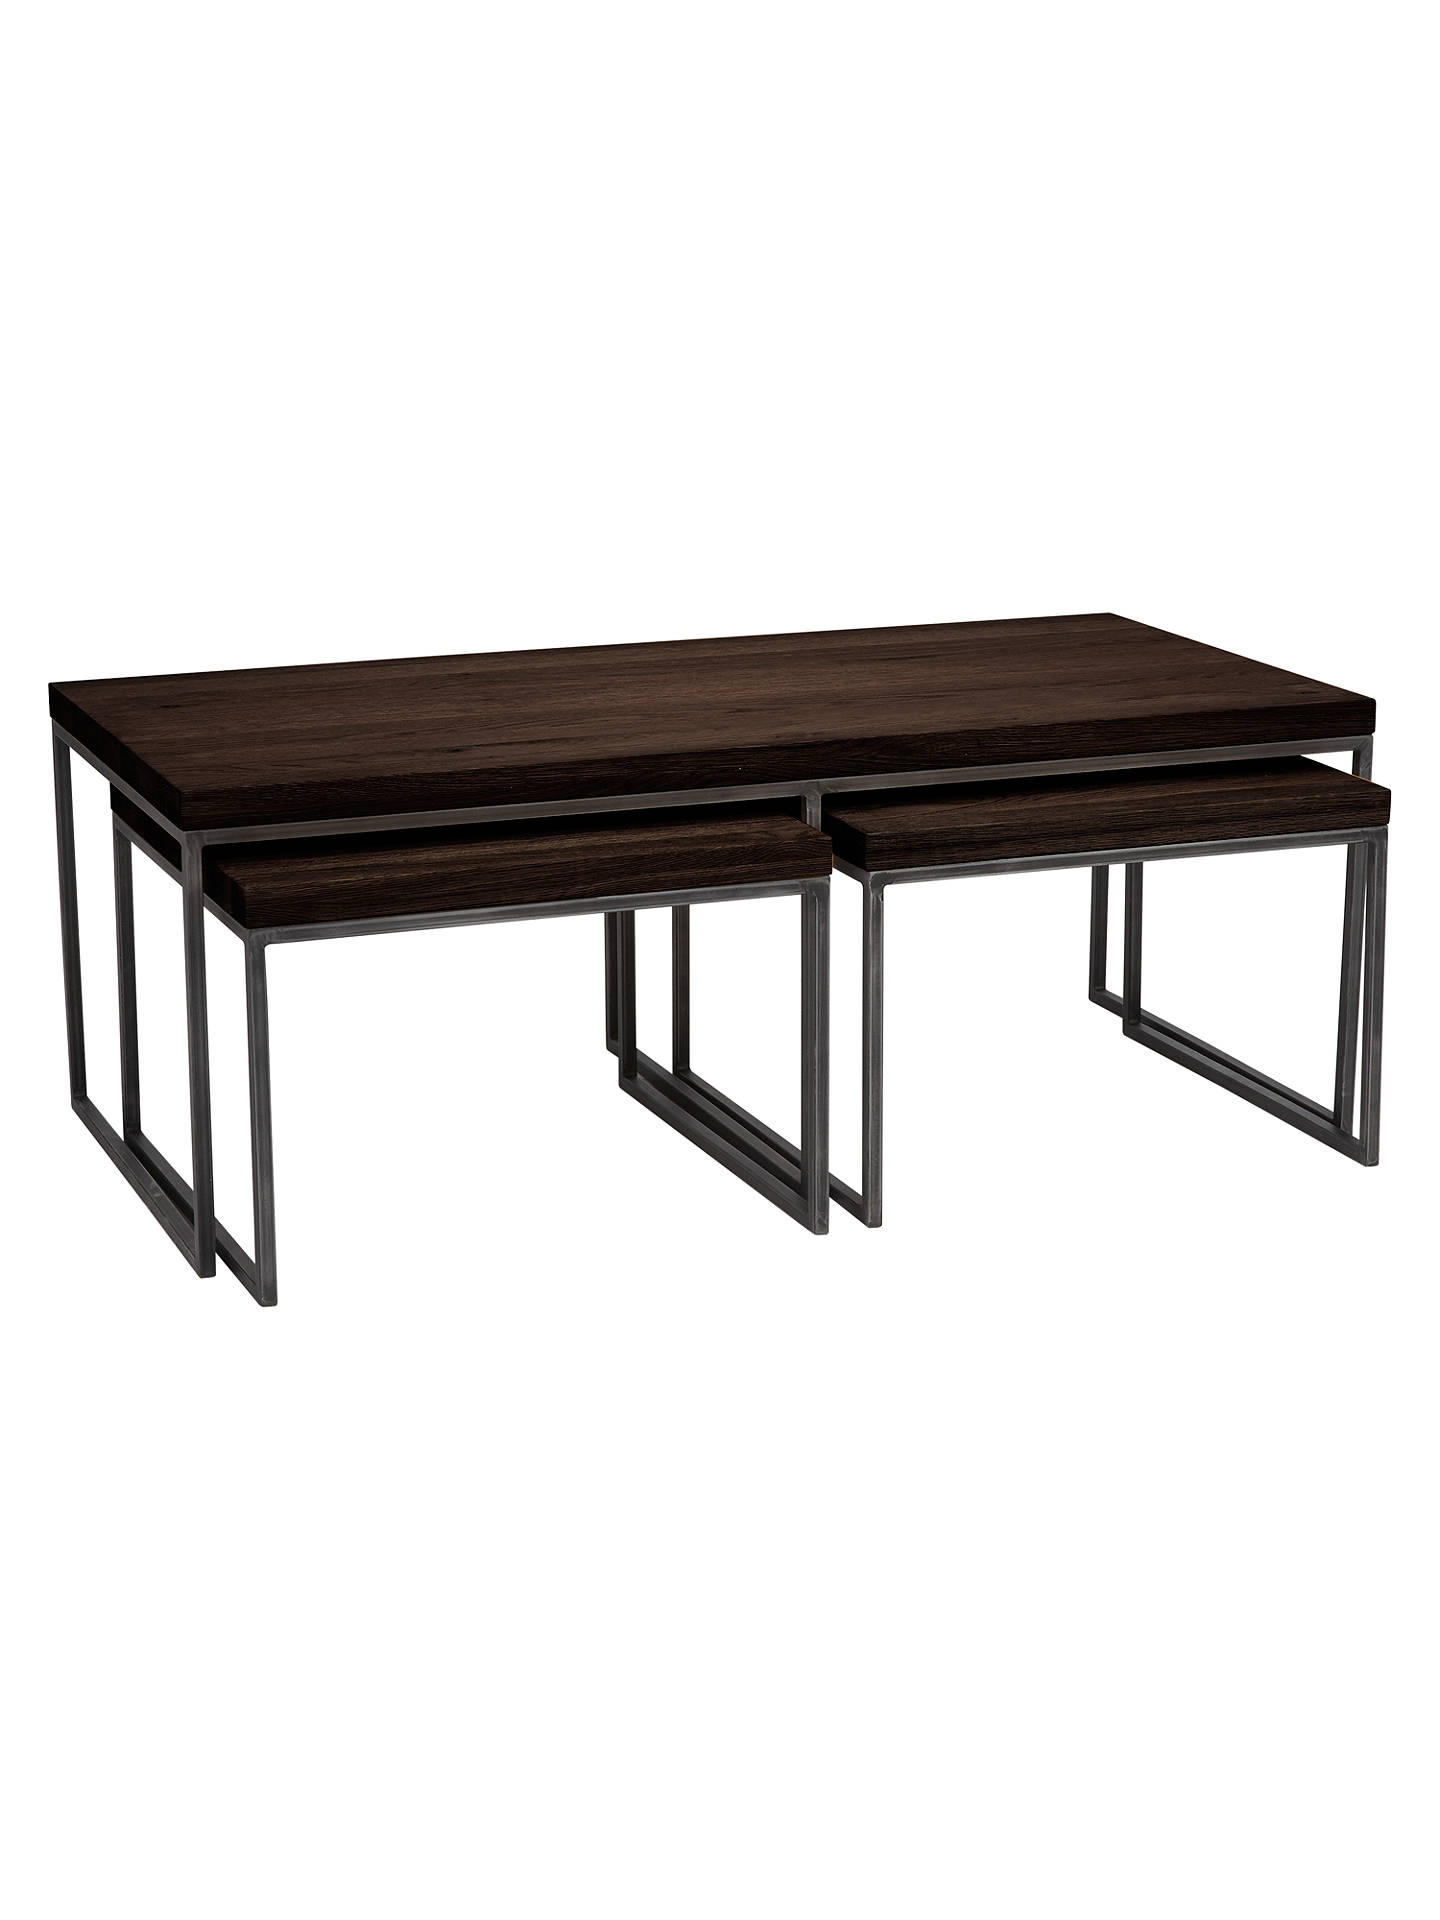 John Lewis Partners Calia Coffee Table With Nest Of 2 Tables Dark Online At